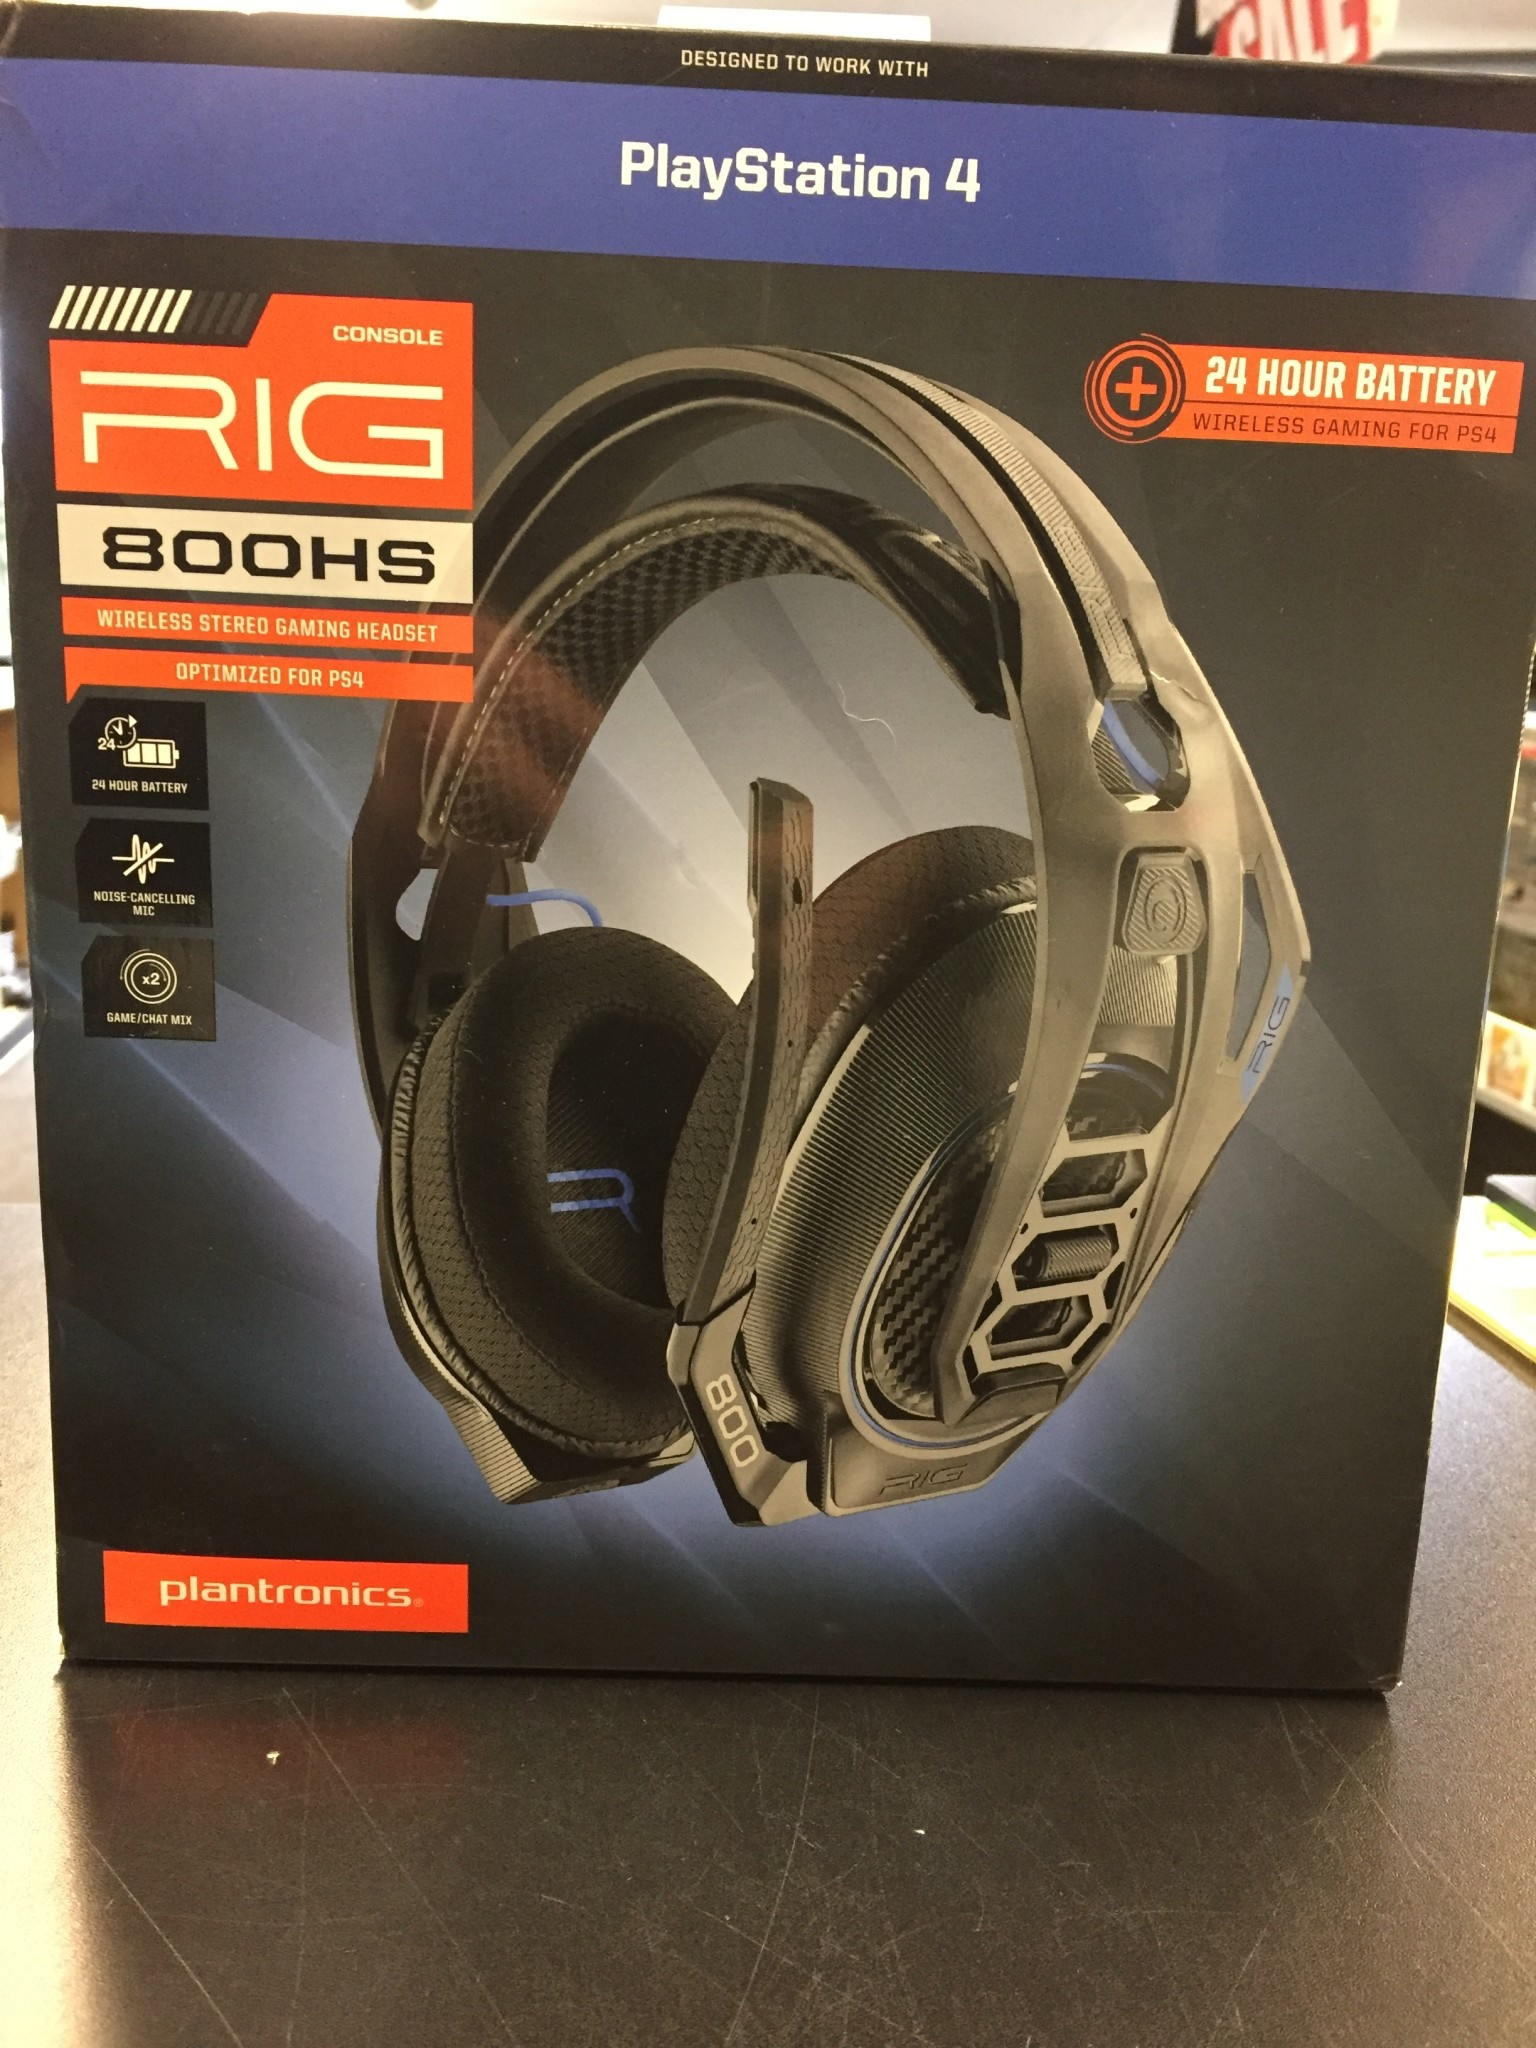 New - Plantronics - Rig 800HS - Wireless Gaming Headset - PS4